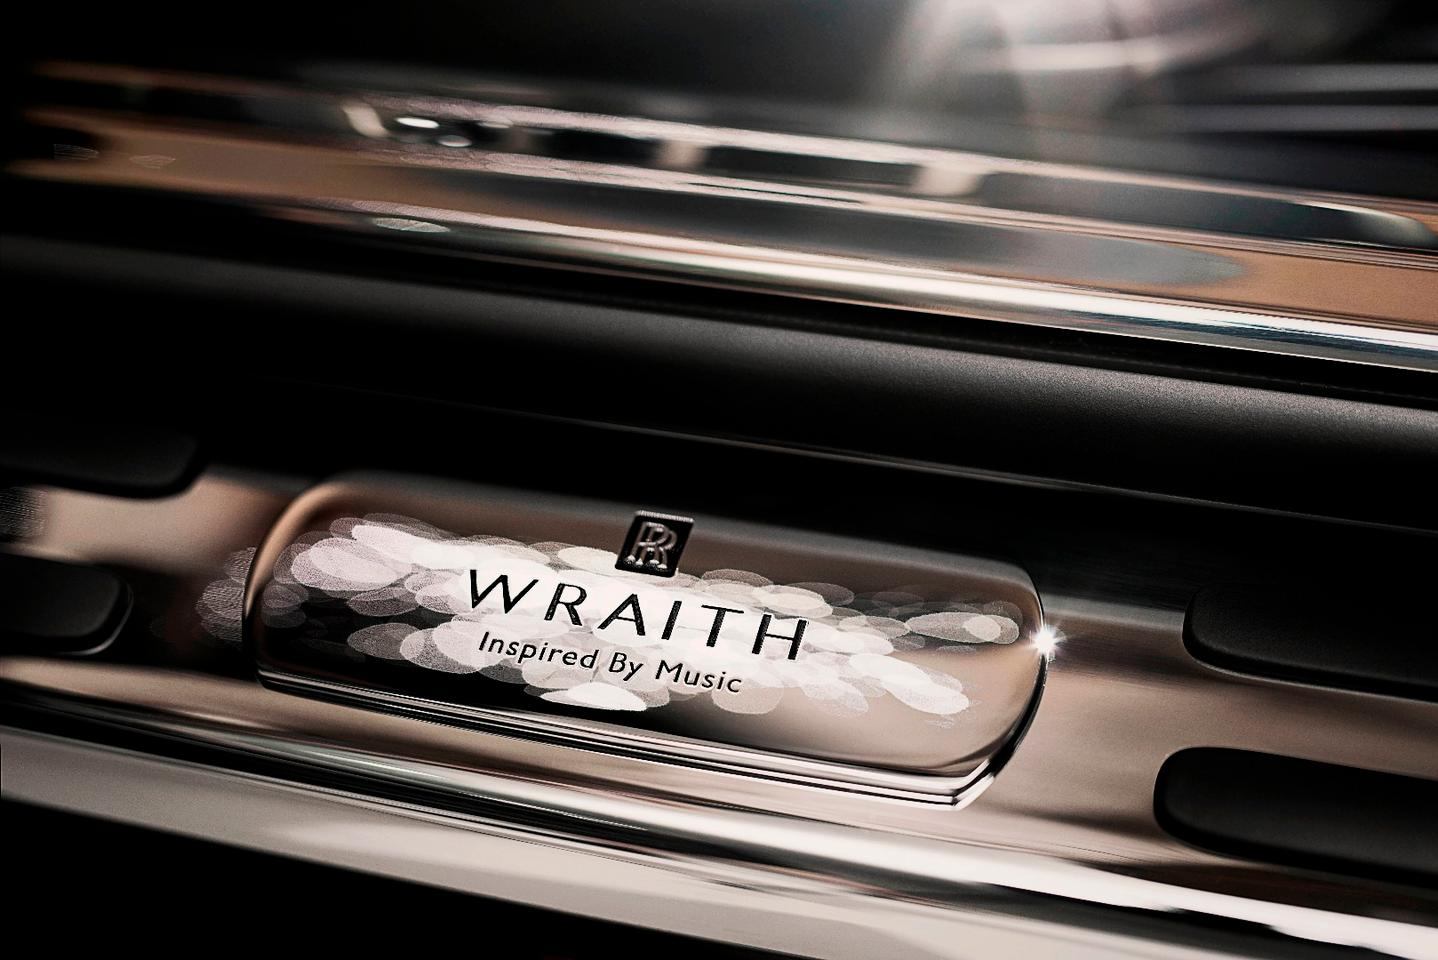 The Wraith Inspired by Music is aimed at audiophiles who want to emulate Elvis and John Lennon in owning a Rolls Royce